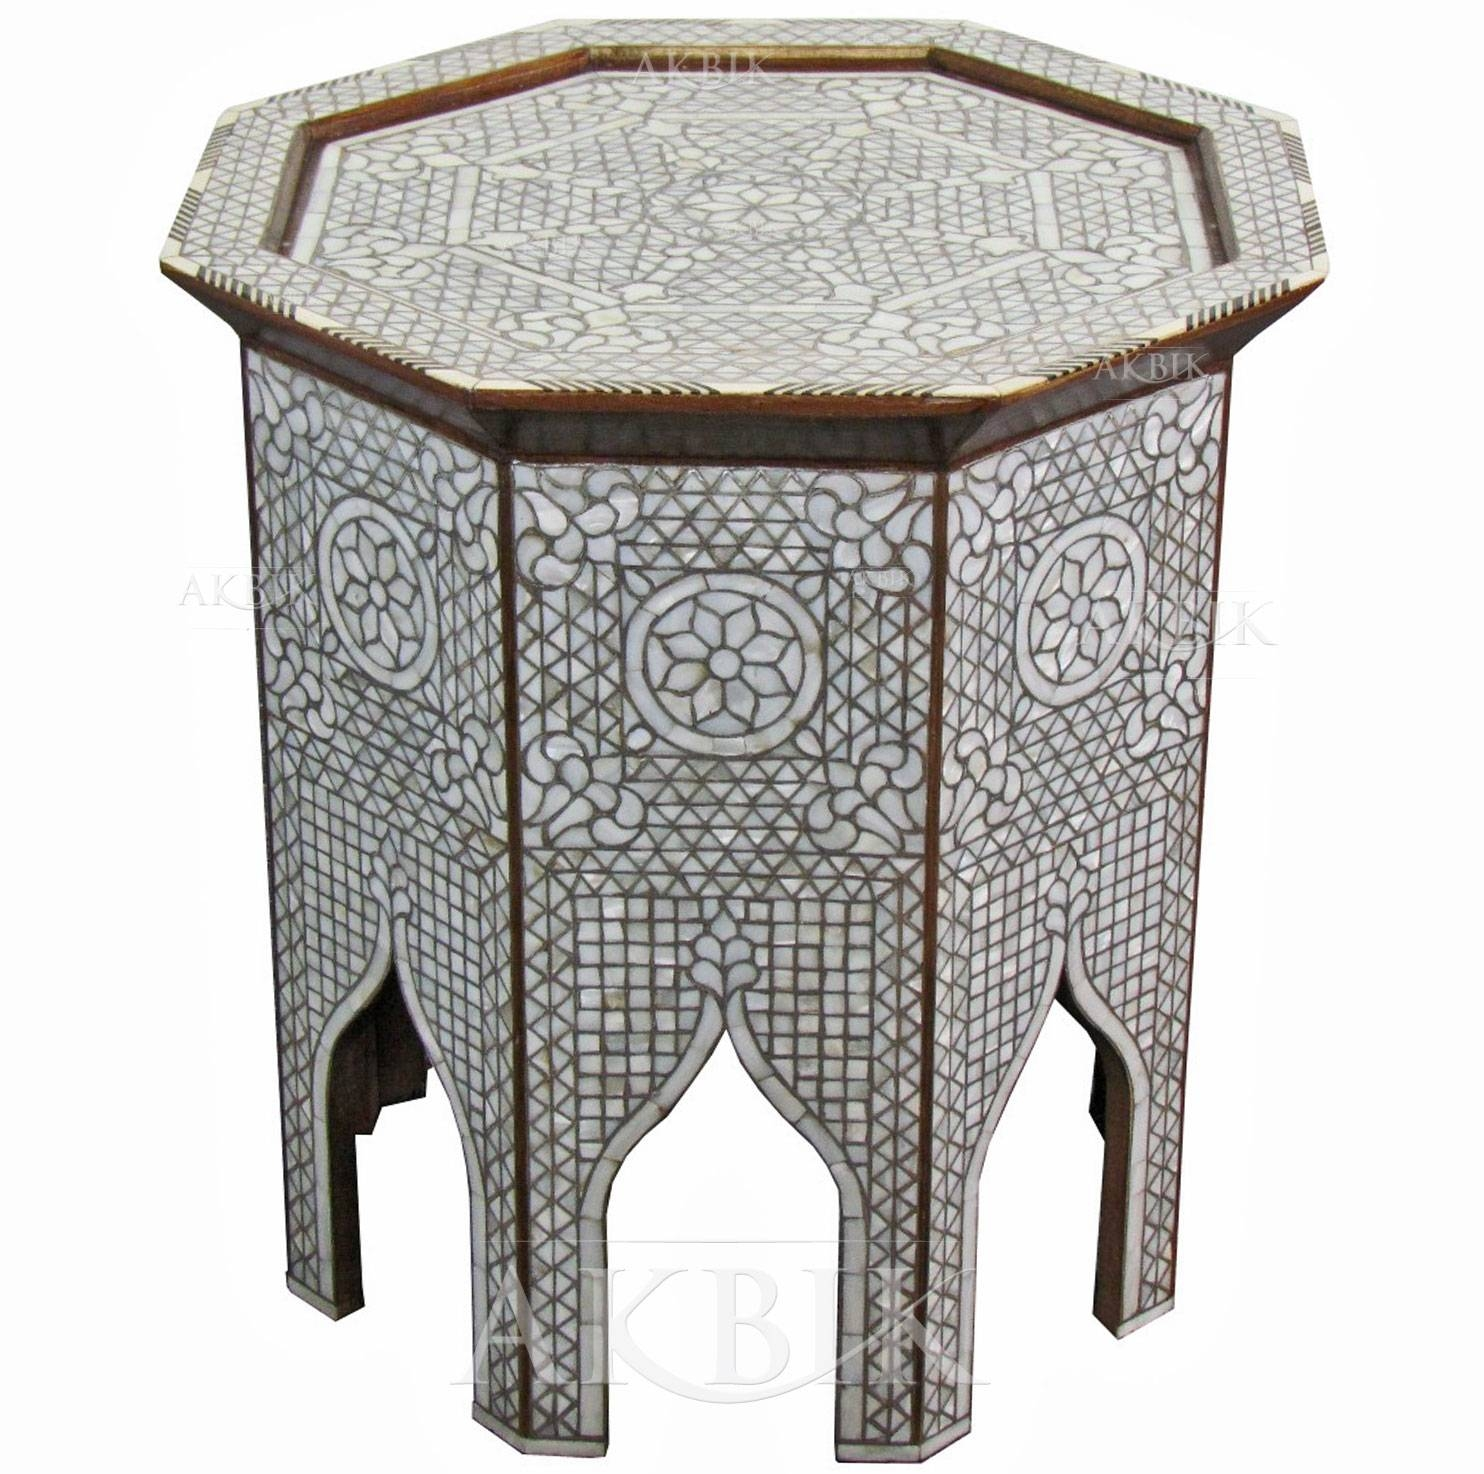 Mediterranean, Levantine & Syrian Furniture Inlaid With Mother Of throughout Mother Of Pearl Coffee Tables (Image 20 of 30)